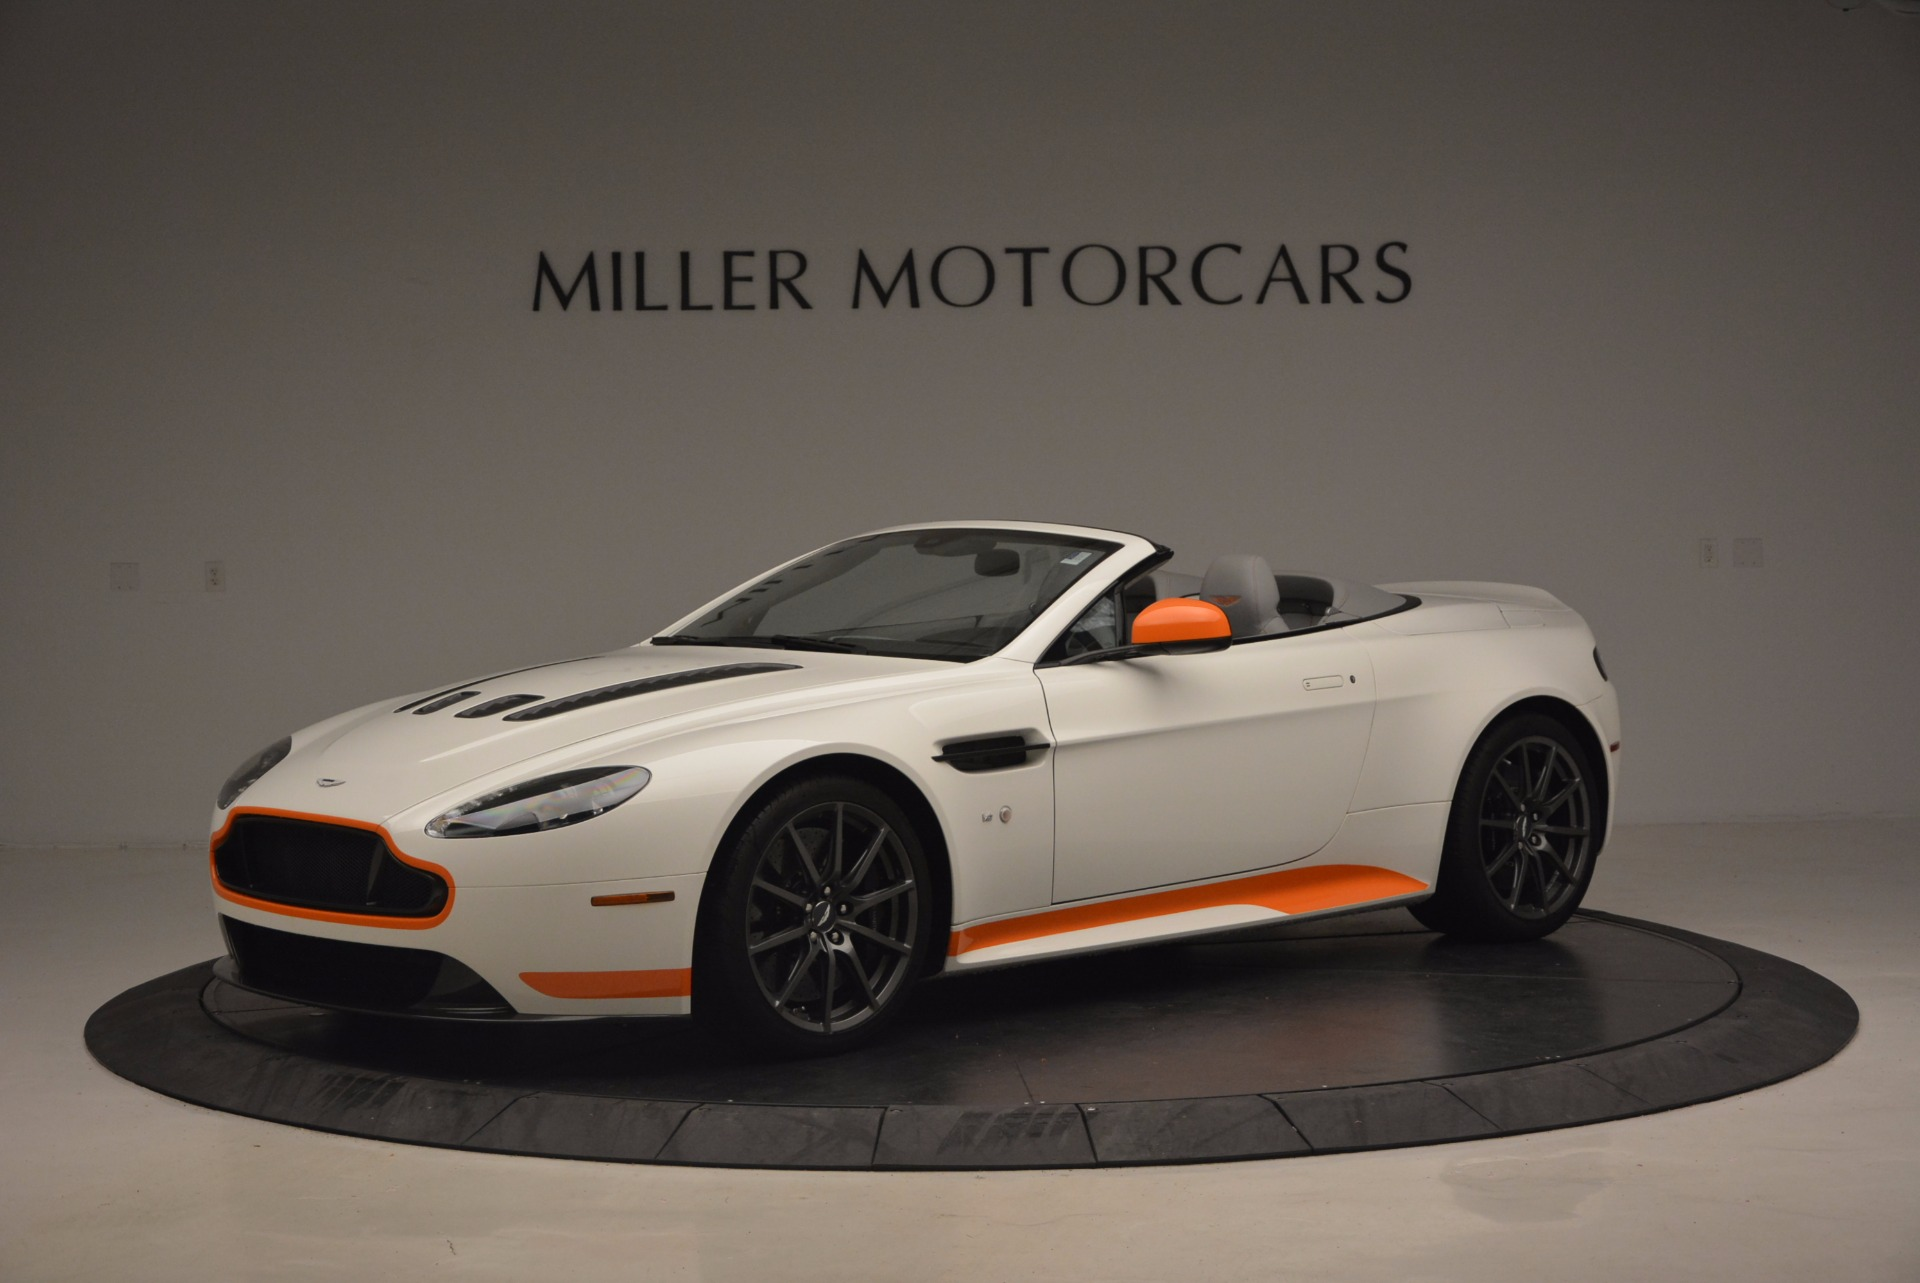 Used 2017 Aston Martin V12 Vantage S Convertible for sale Sold at Bugatti of Greenwich in Greenwich CT 06830 1